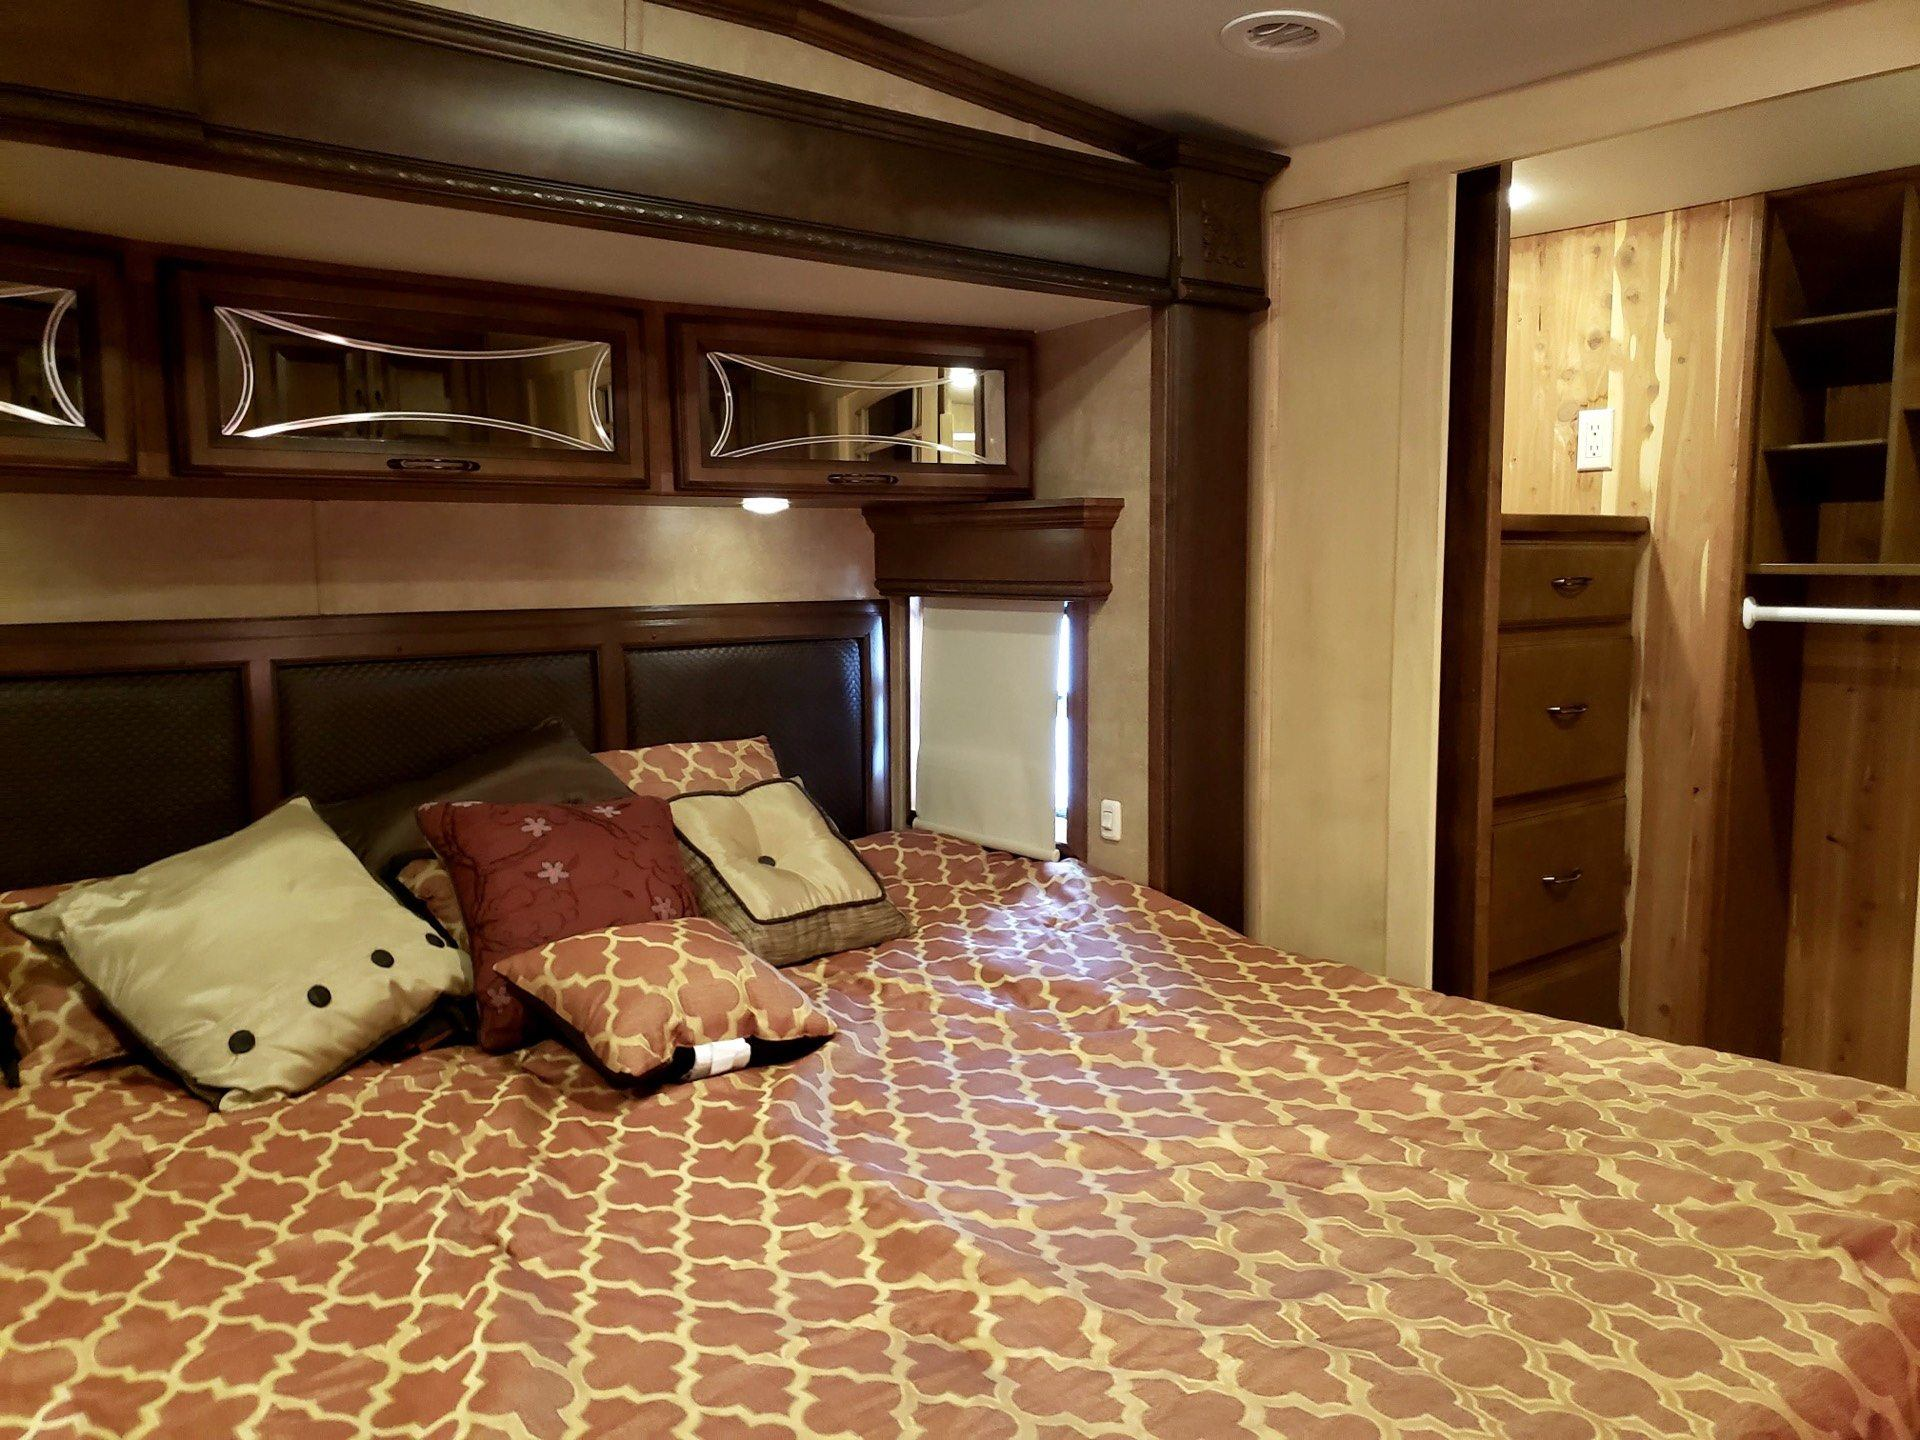 2014 DRV Mobile D Suites 39RESB3 in Wolfforth, Texas - Photo 14